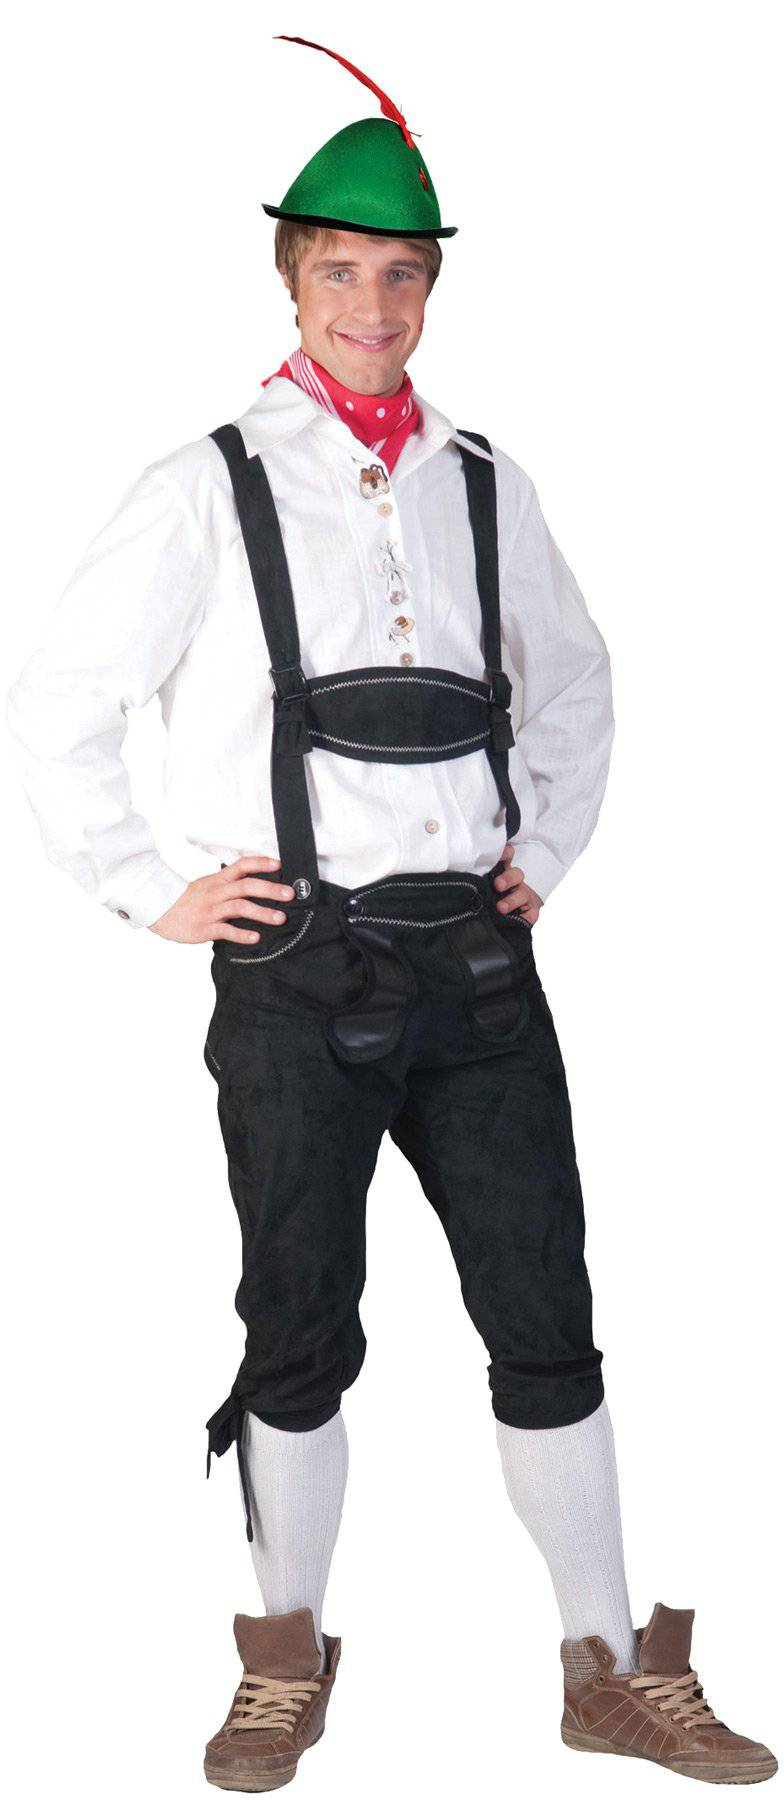 Funny Fashion Men's Tyrolean Shirt Theme Party Costume - Costume Arena